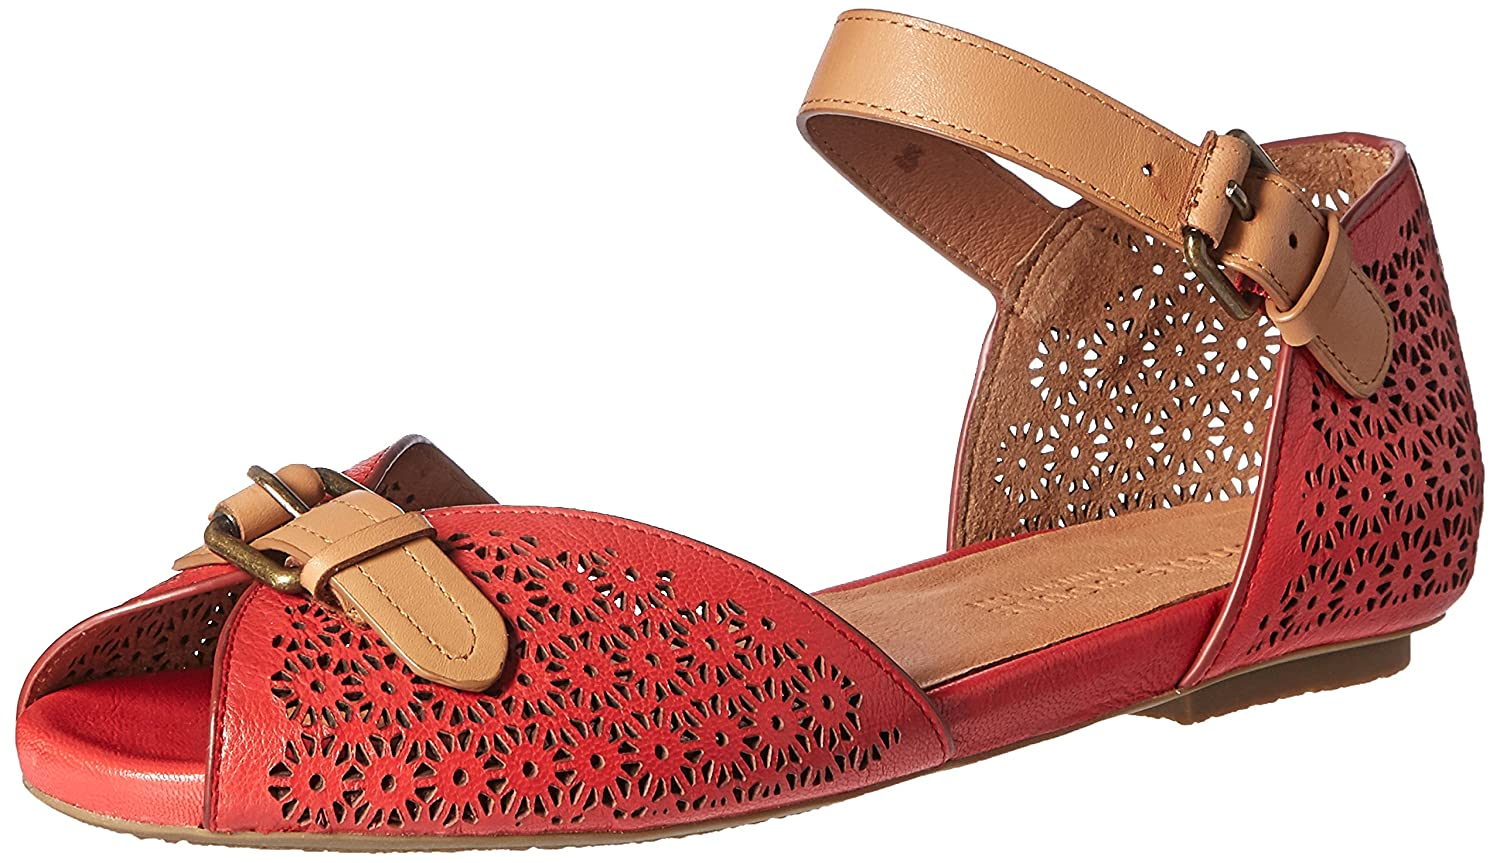 Gentle Souls by Kenneth Cole Women's Bessie Flat B01I0LIHH8 7 B(M) US|Red